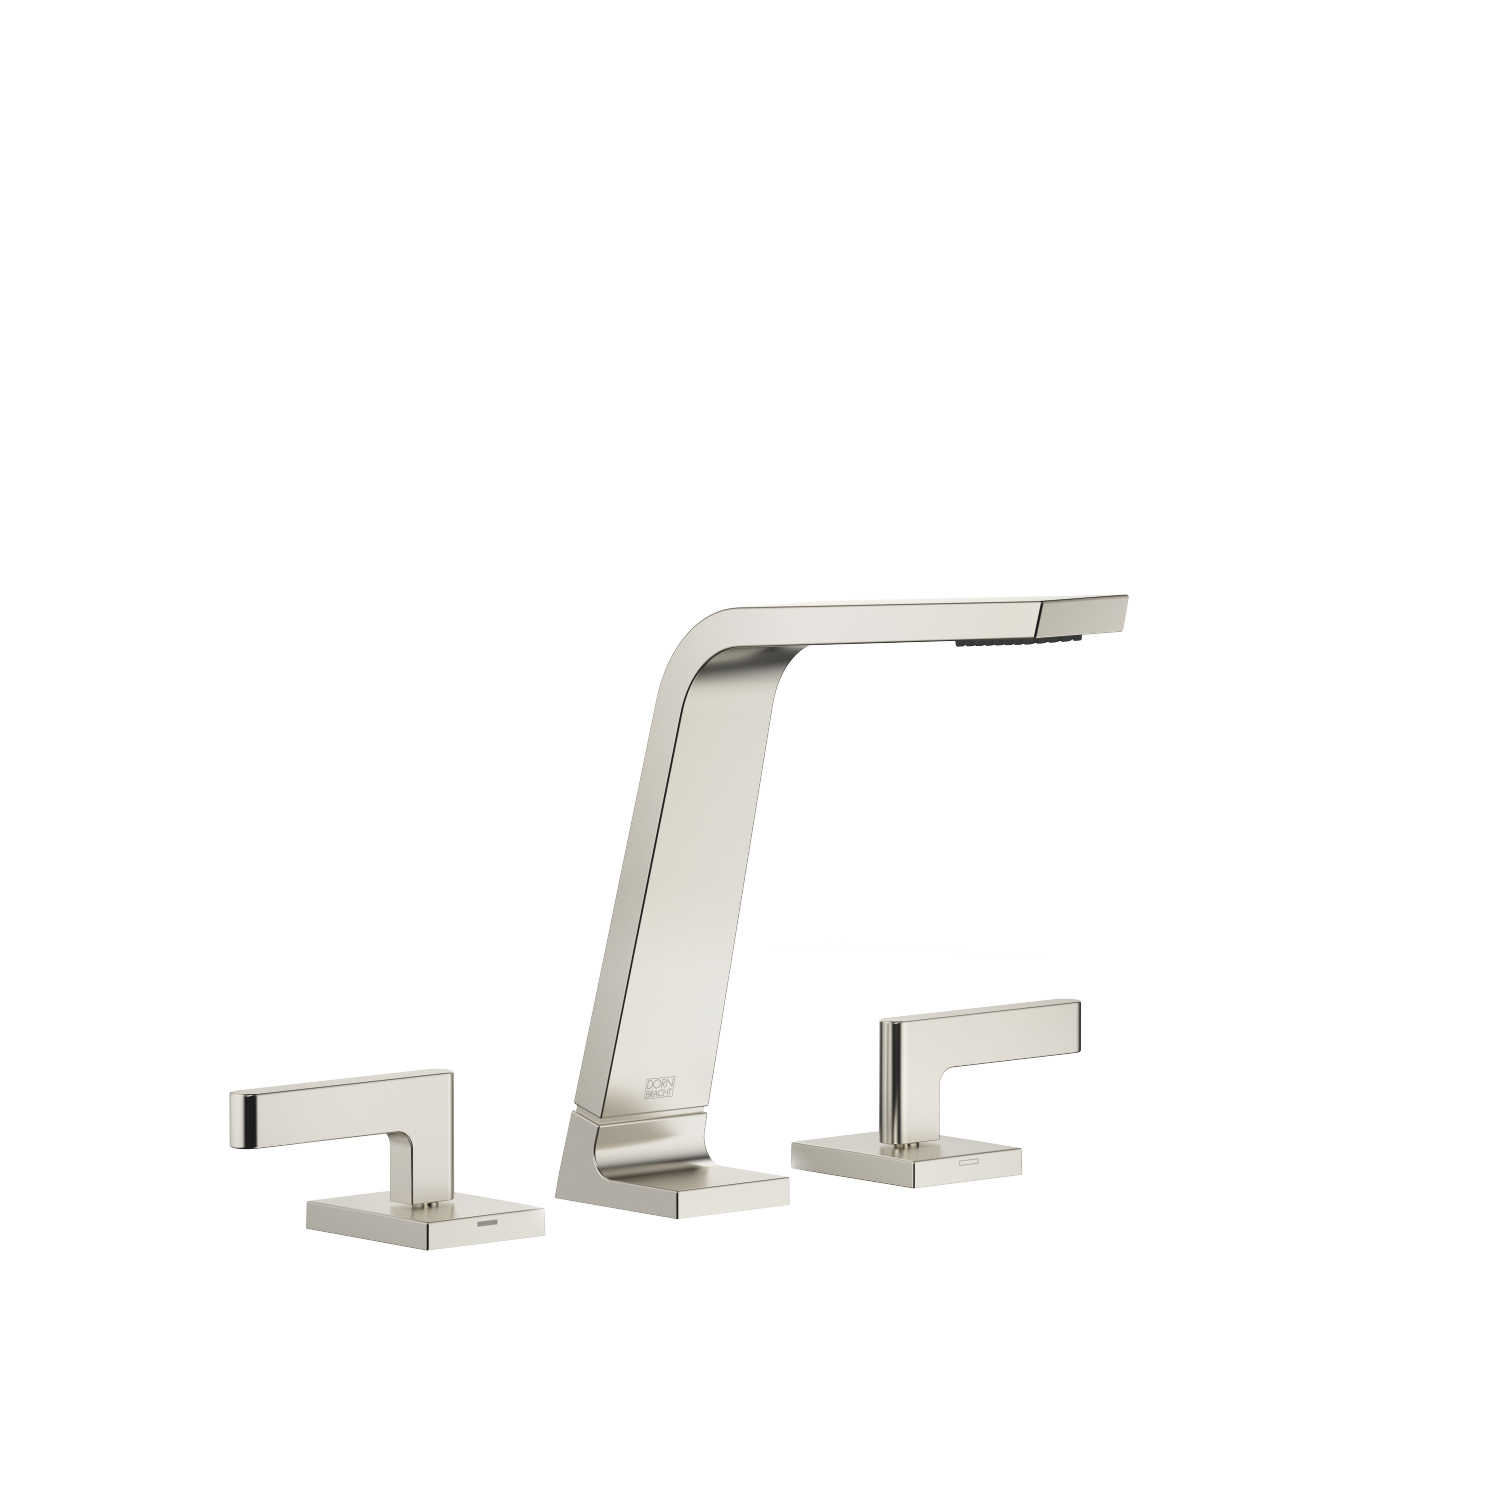 Three-hole basin mixer without pop-up waste - platinum matt - 13 715 705-06 + 20 004 715-06 + 20 004 716-06